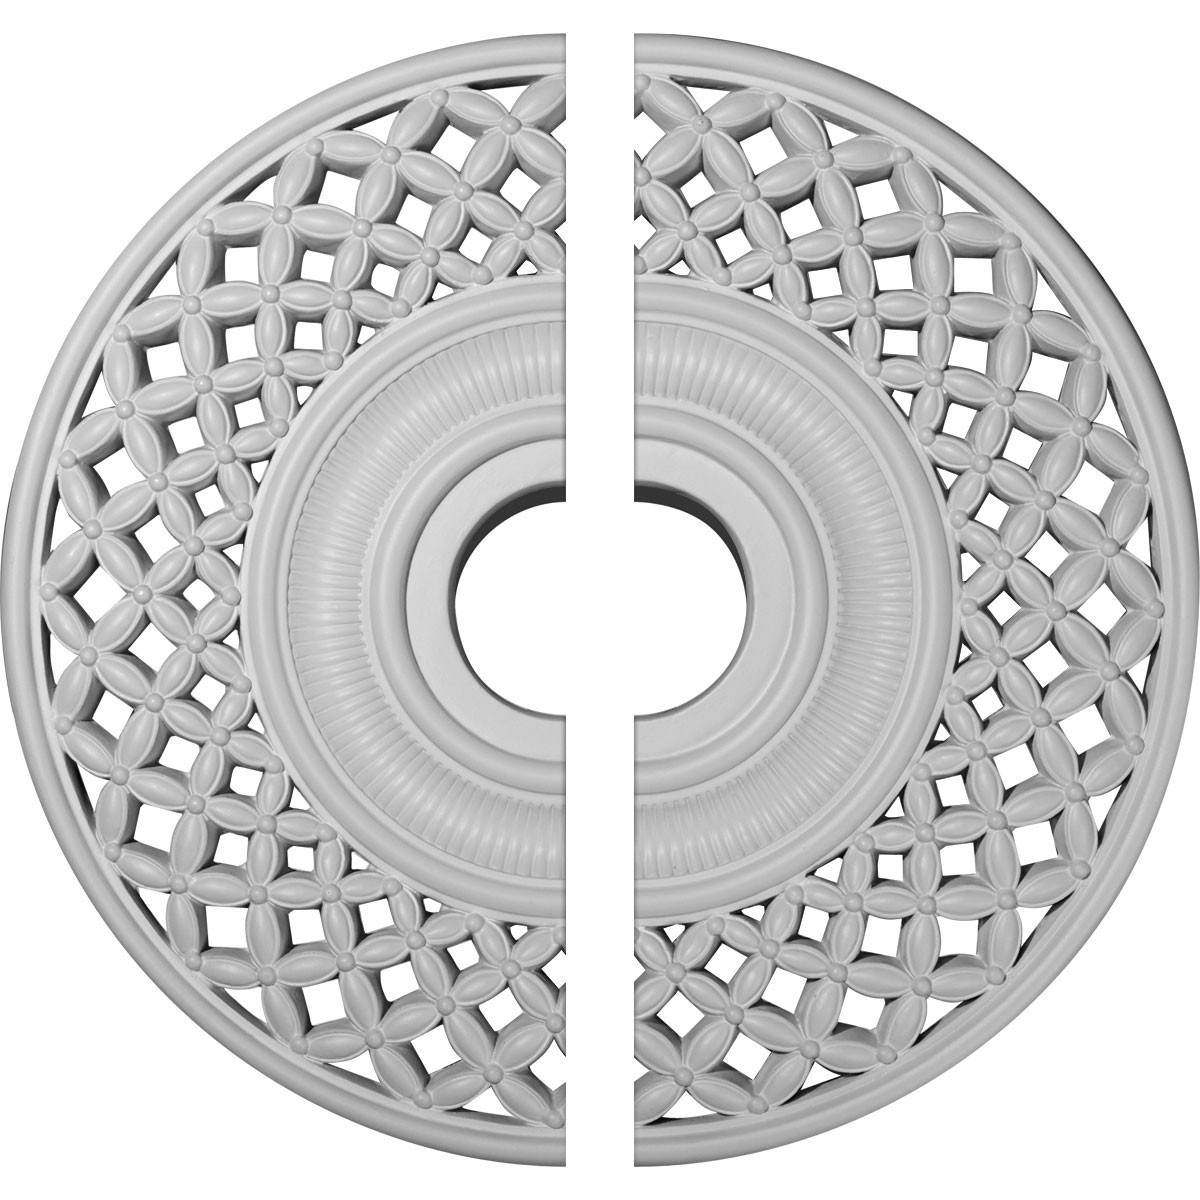 """EM-CM22RB2 - 22 1/4""""OD x 4 3/4""""ID x 1 1/4""""P Robin Ceiling Medallion, Two Piece (Fits Canopies up to 6 1/4"""")"""